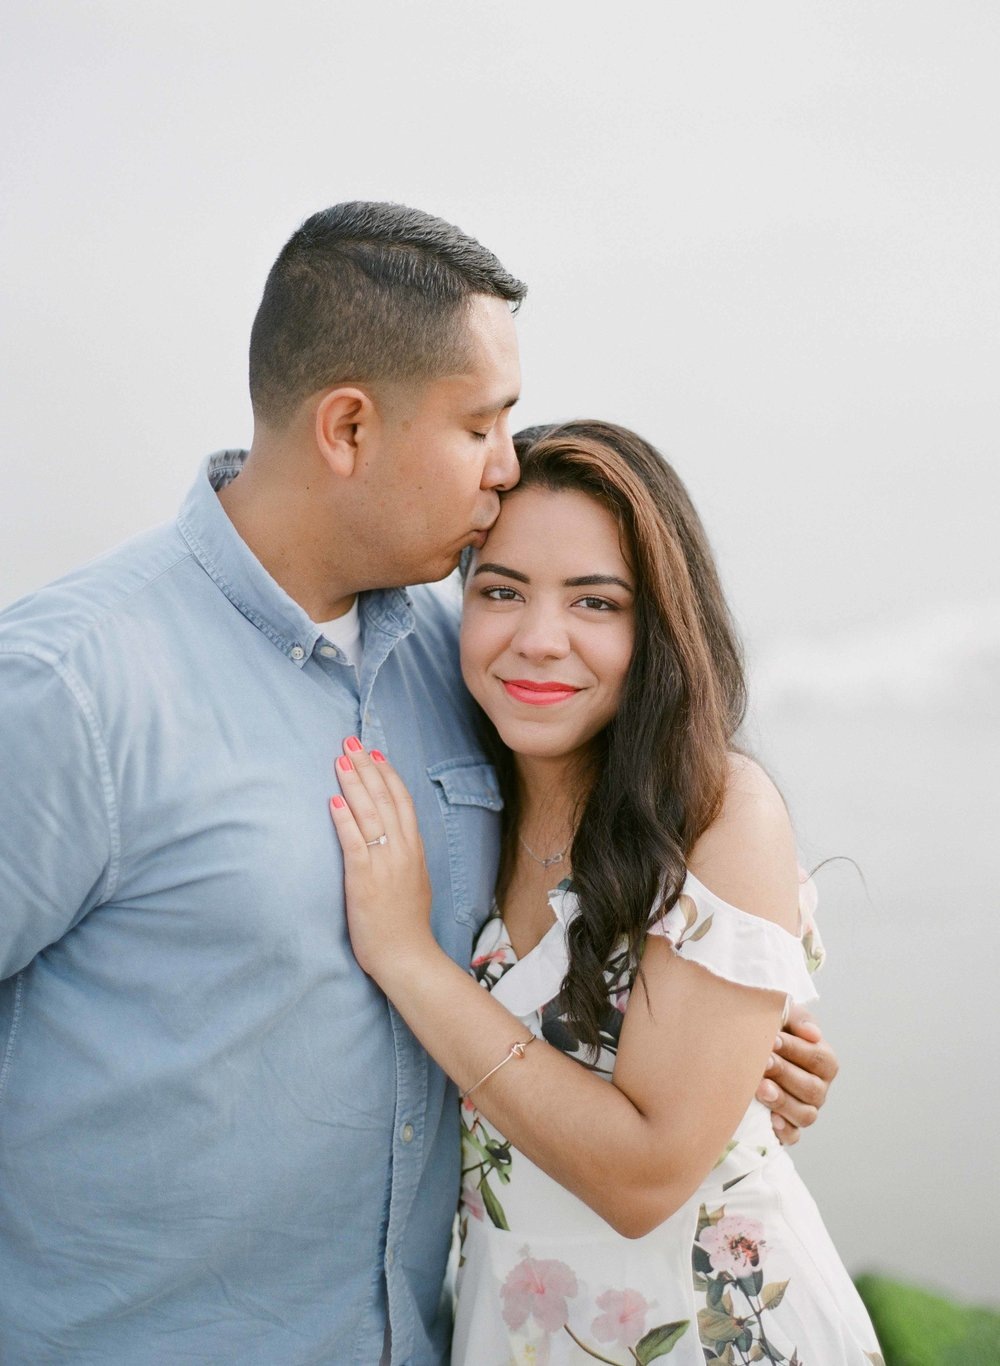 06_coney-island-beautiful-engagement-session.jpg